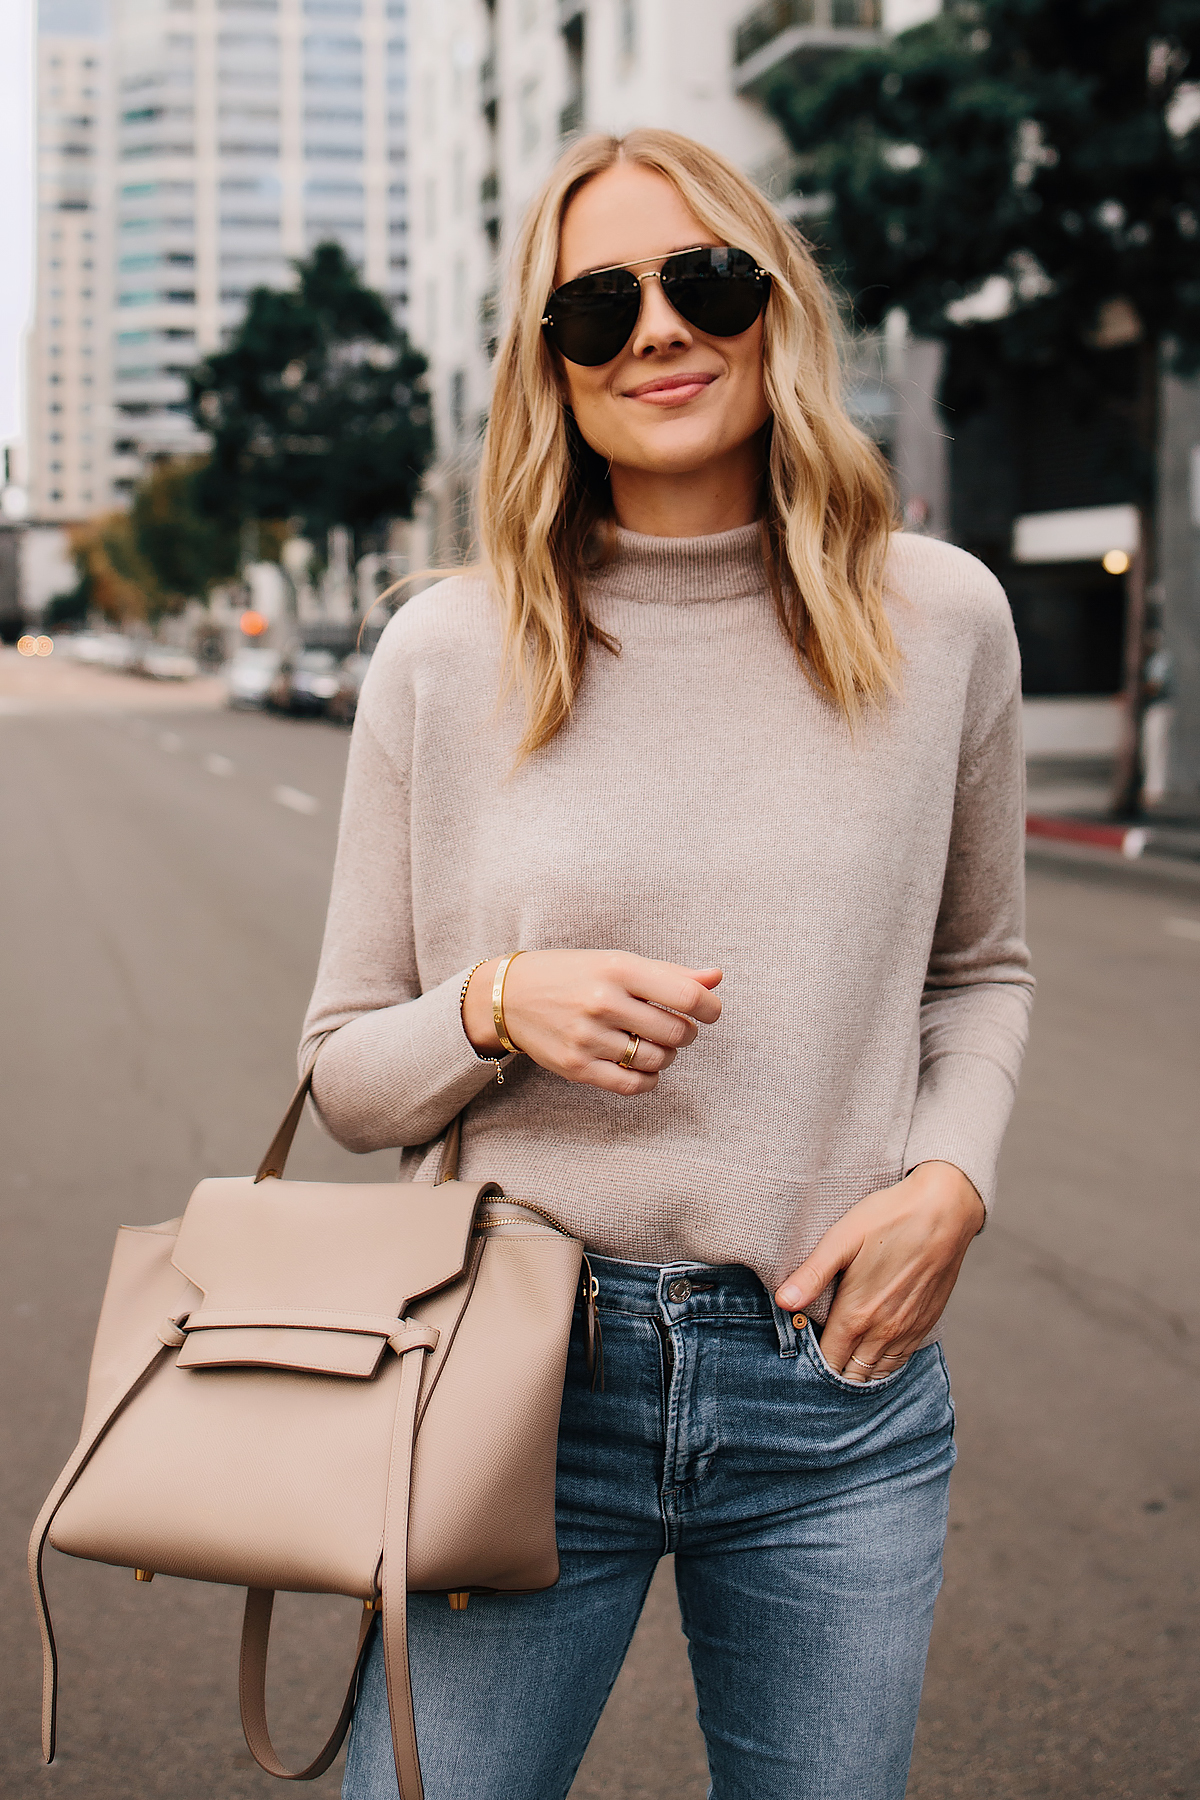 d94f793b623 Blonde Woman Wearing Everlane Cashmere Sweater Denim Skinny Jeans Celine  Mini Belt Bag Outfit Fashion Jackson